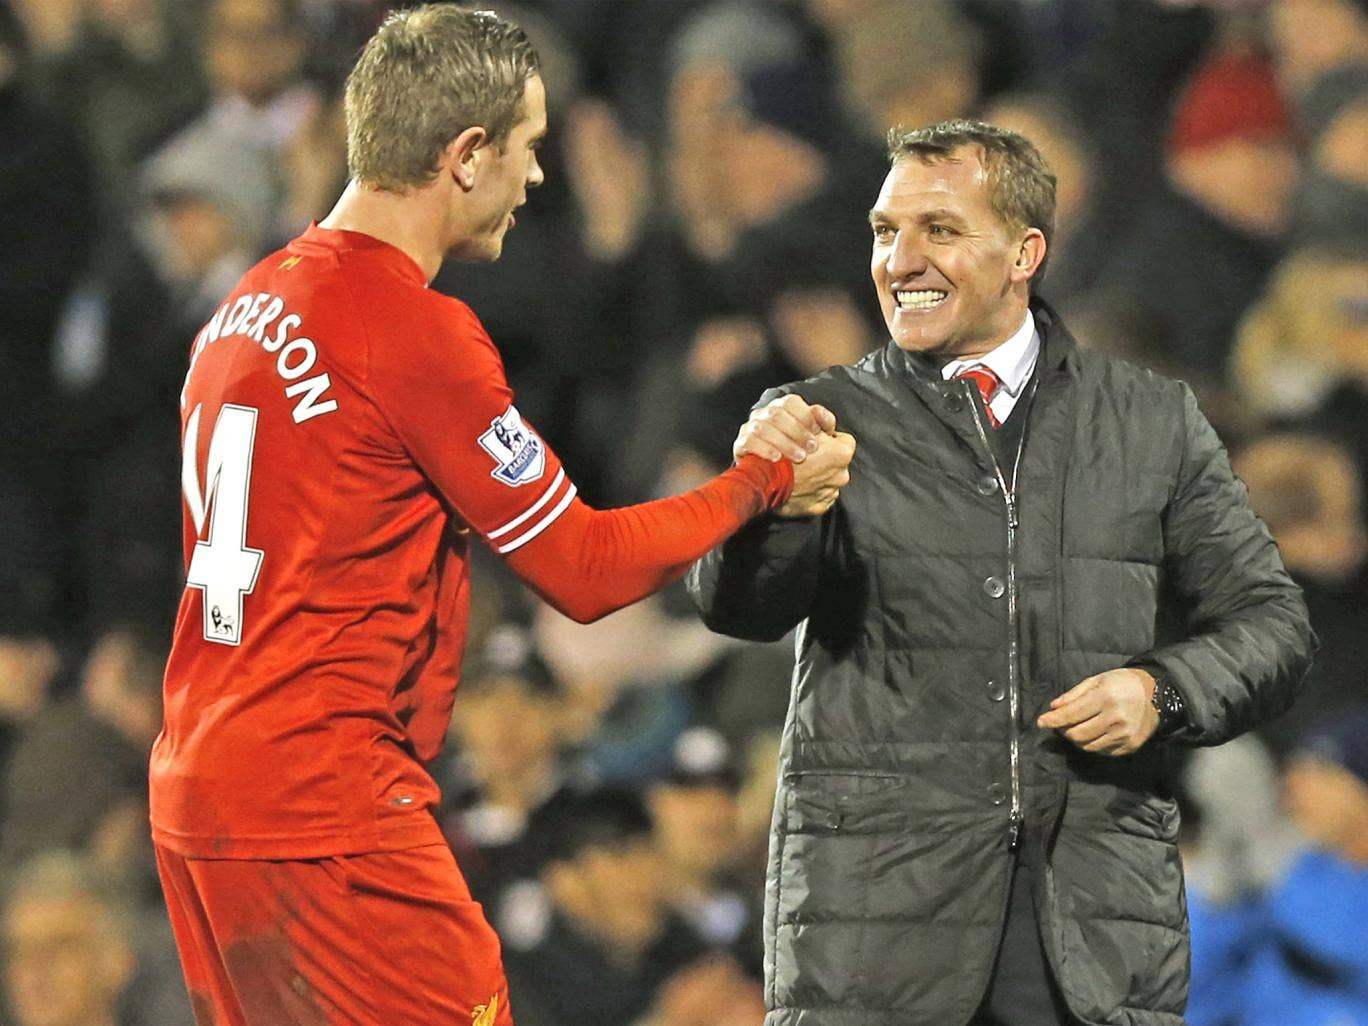 Liverpool manager Brendan Rodgers shares the joy of a hard-fought victory with midfielder Jordan Henderson